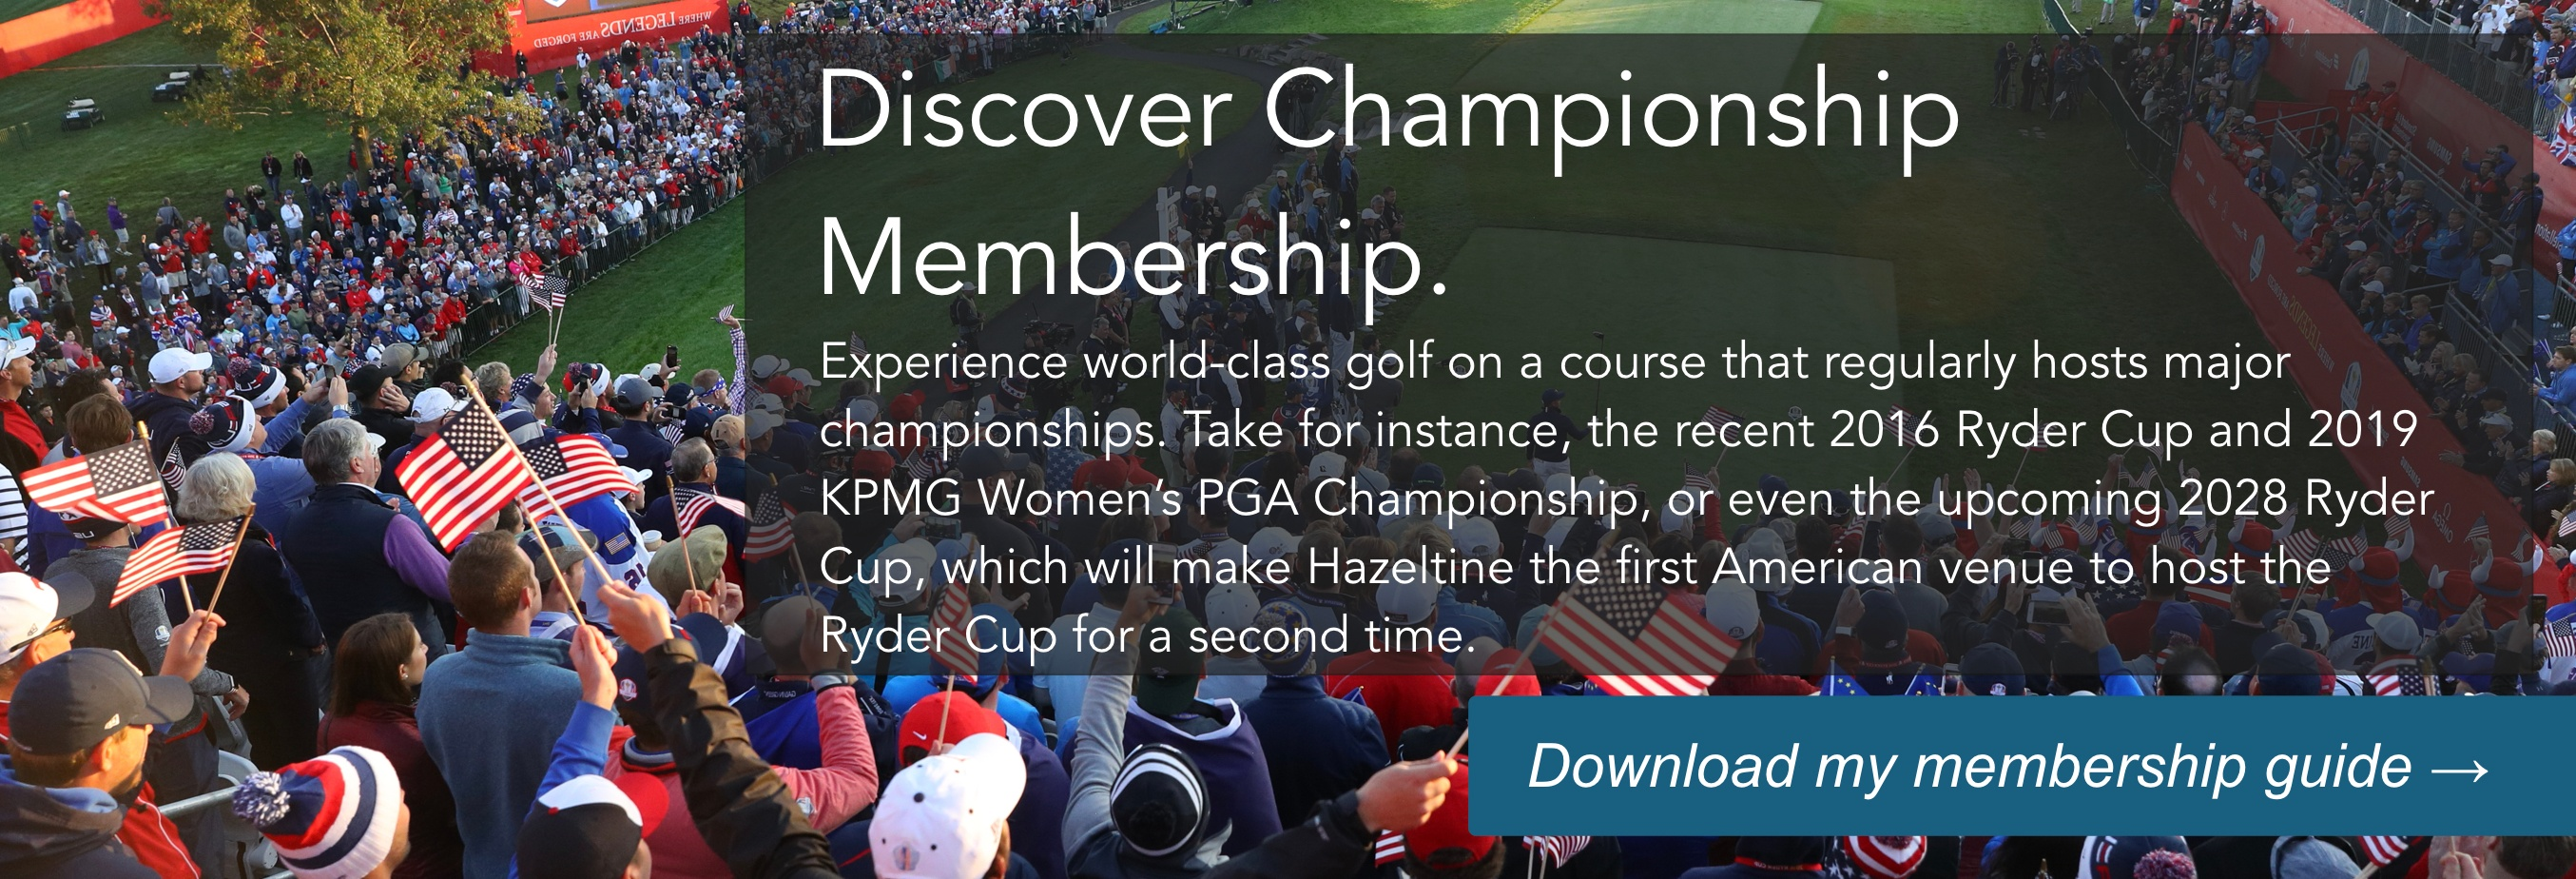 Discover Championship Membership